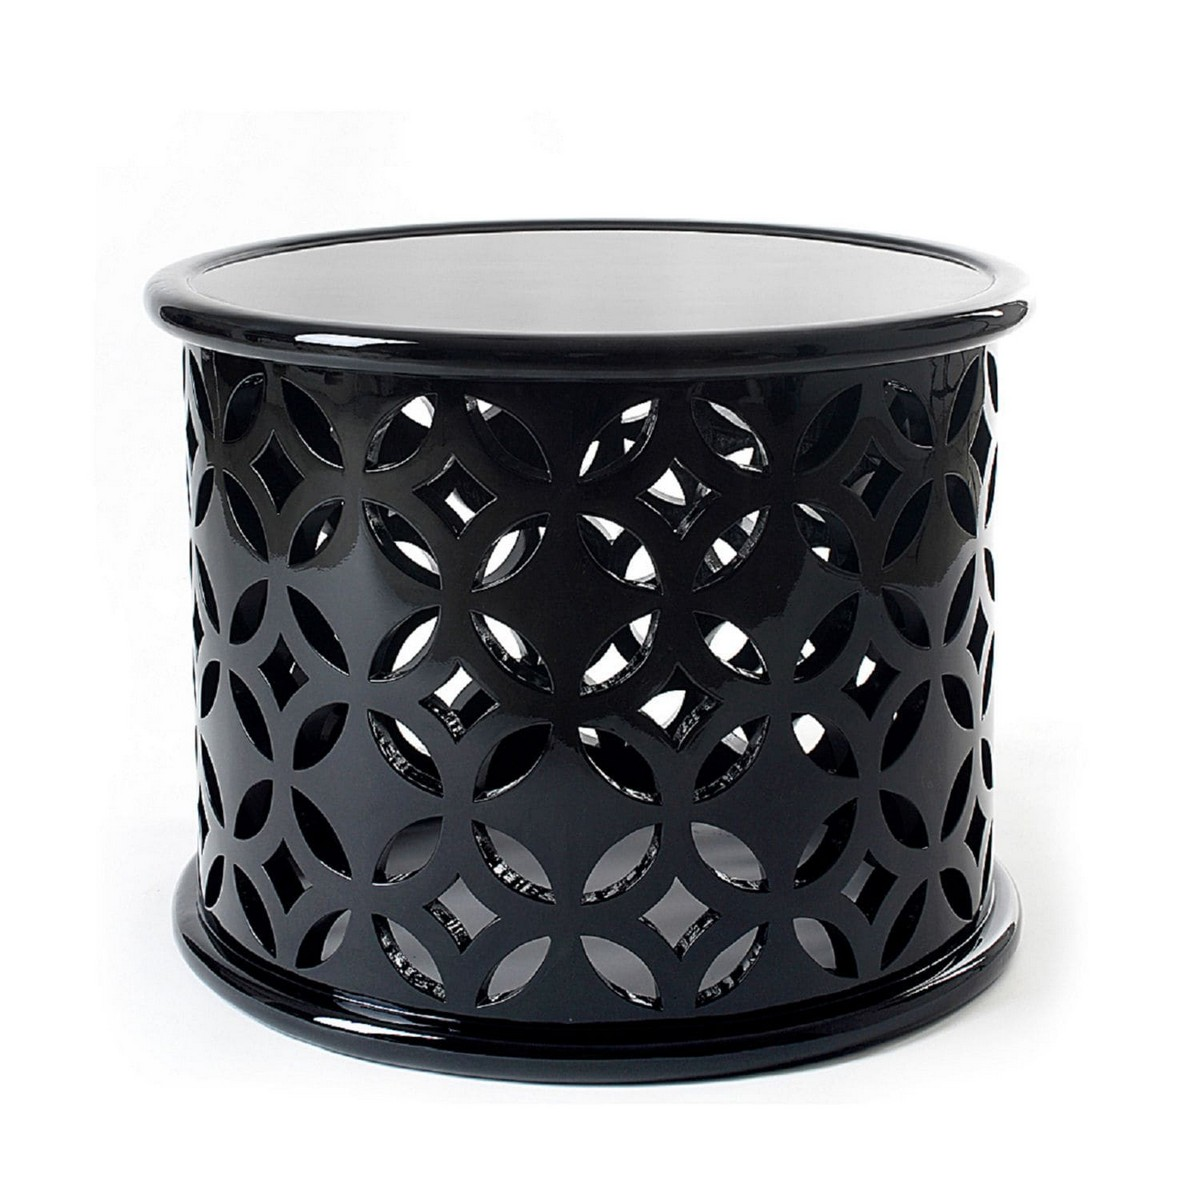 black and white side tables, side tables, black side tables, white side tables, living room, decor, detail, design, modern, luxury, combination, sophisticated,  side tables Black And White Are The Best Colors For A Side Table 66254 11281040